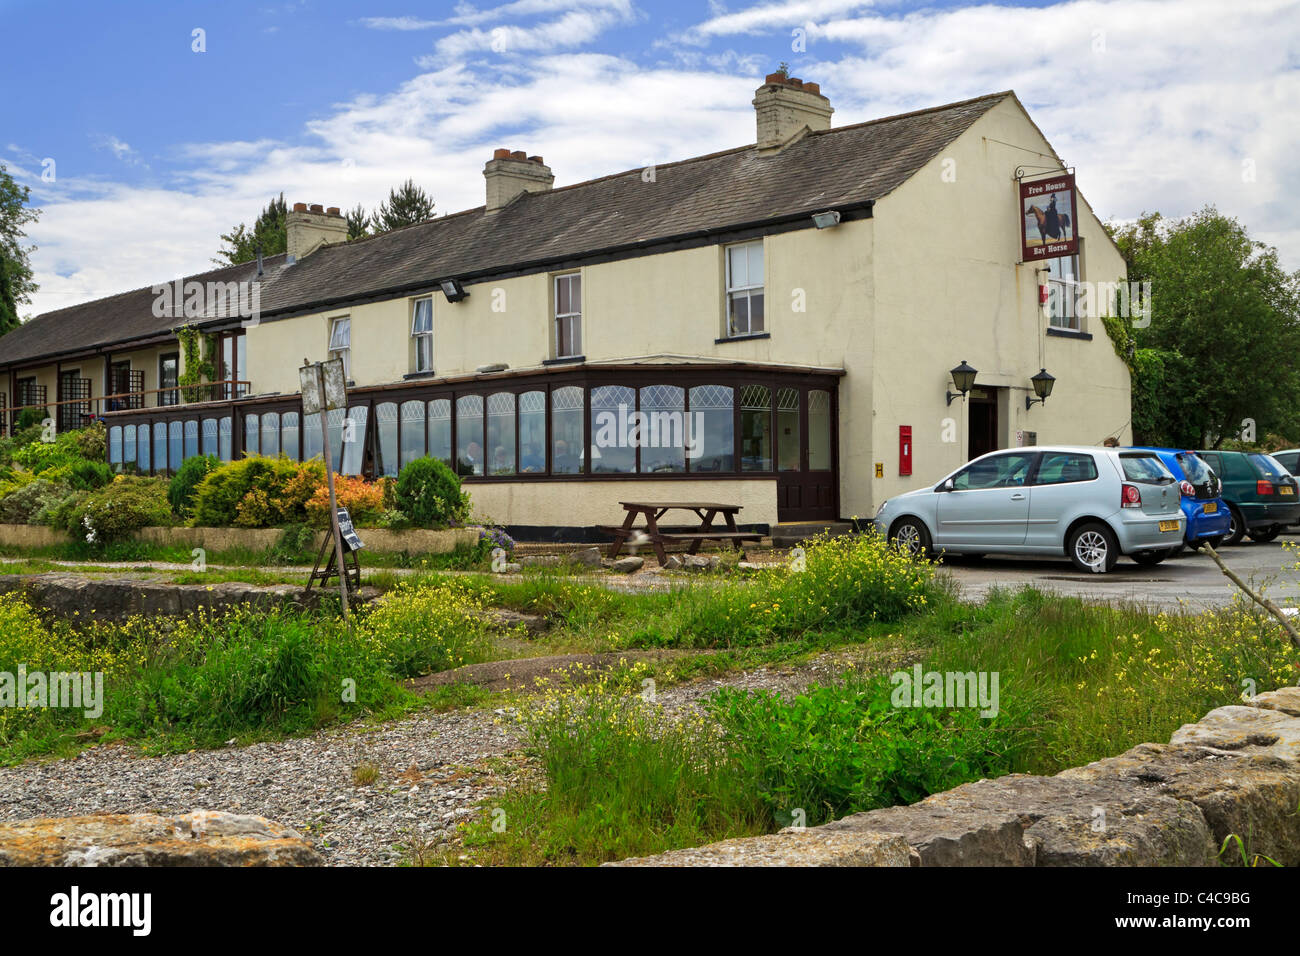 Bay Horse Hotel, Canal Foot, Cumbria. Stock Photo